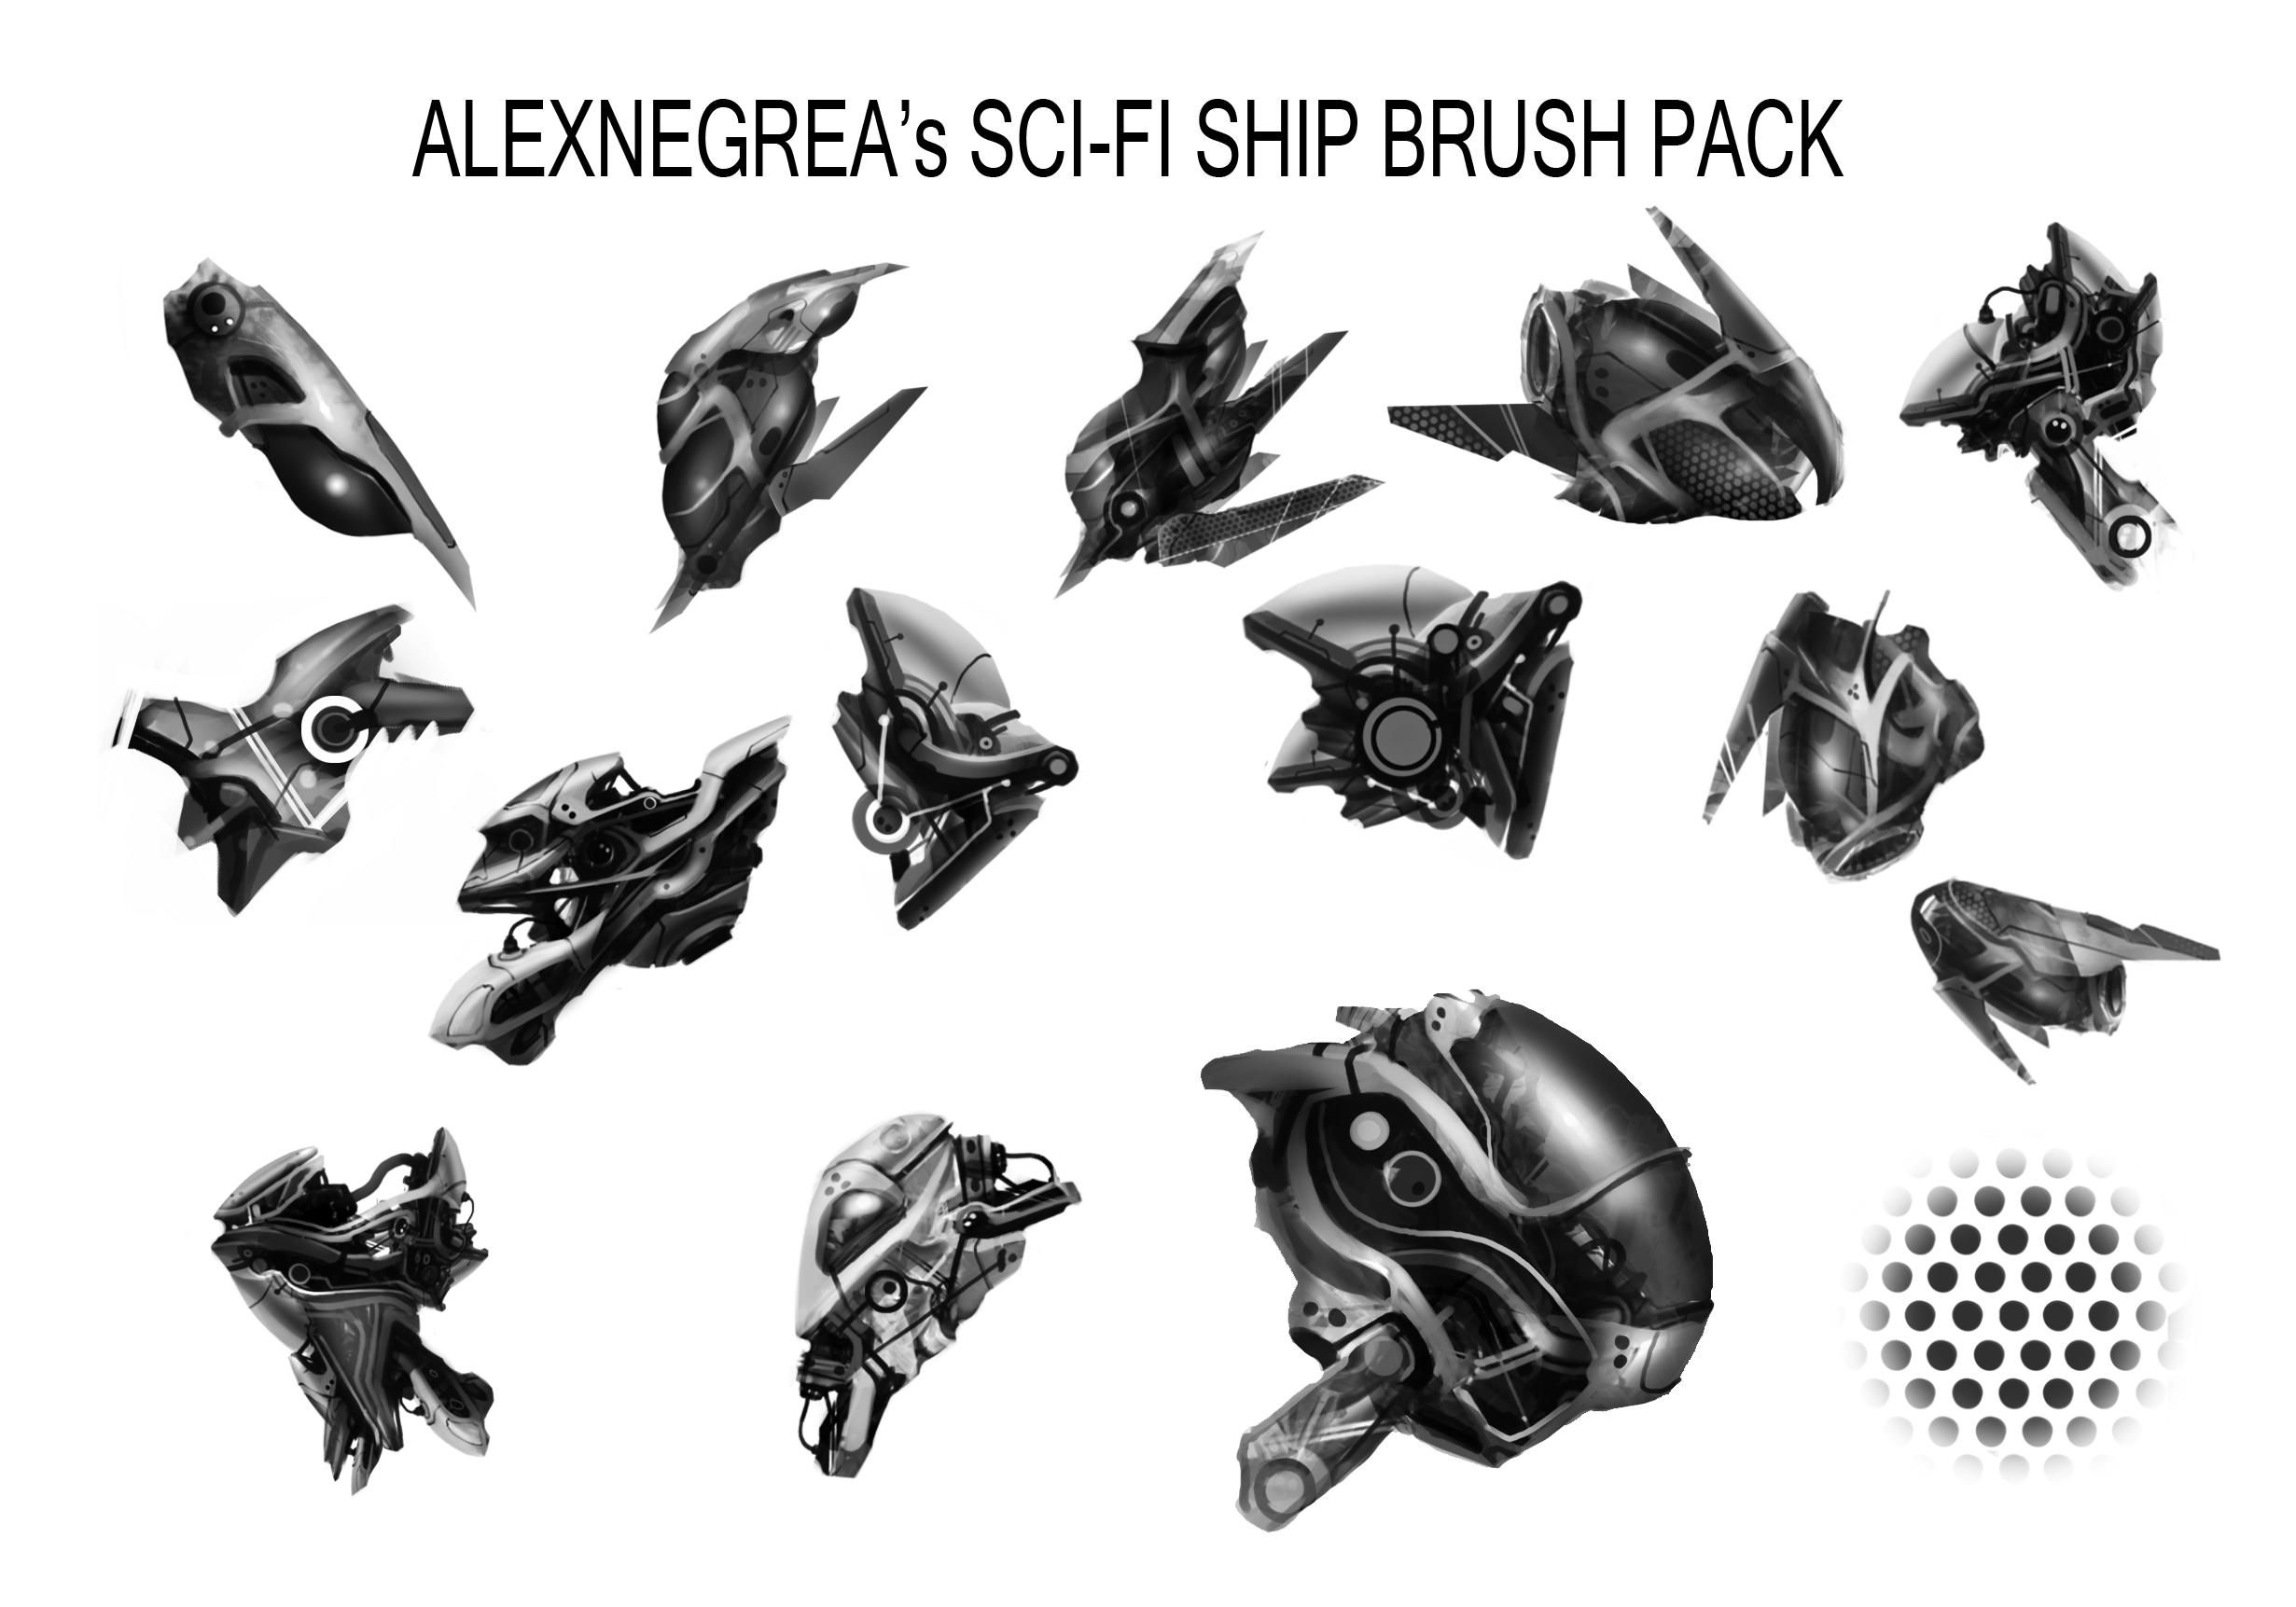 Sci-Fi Ship Brushes by alexnegrea